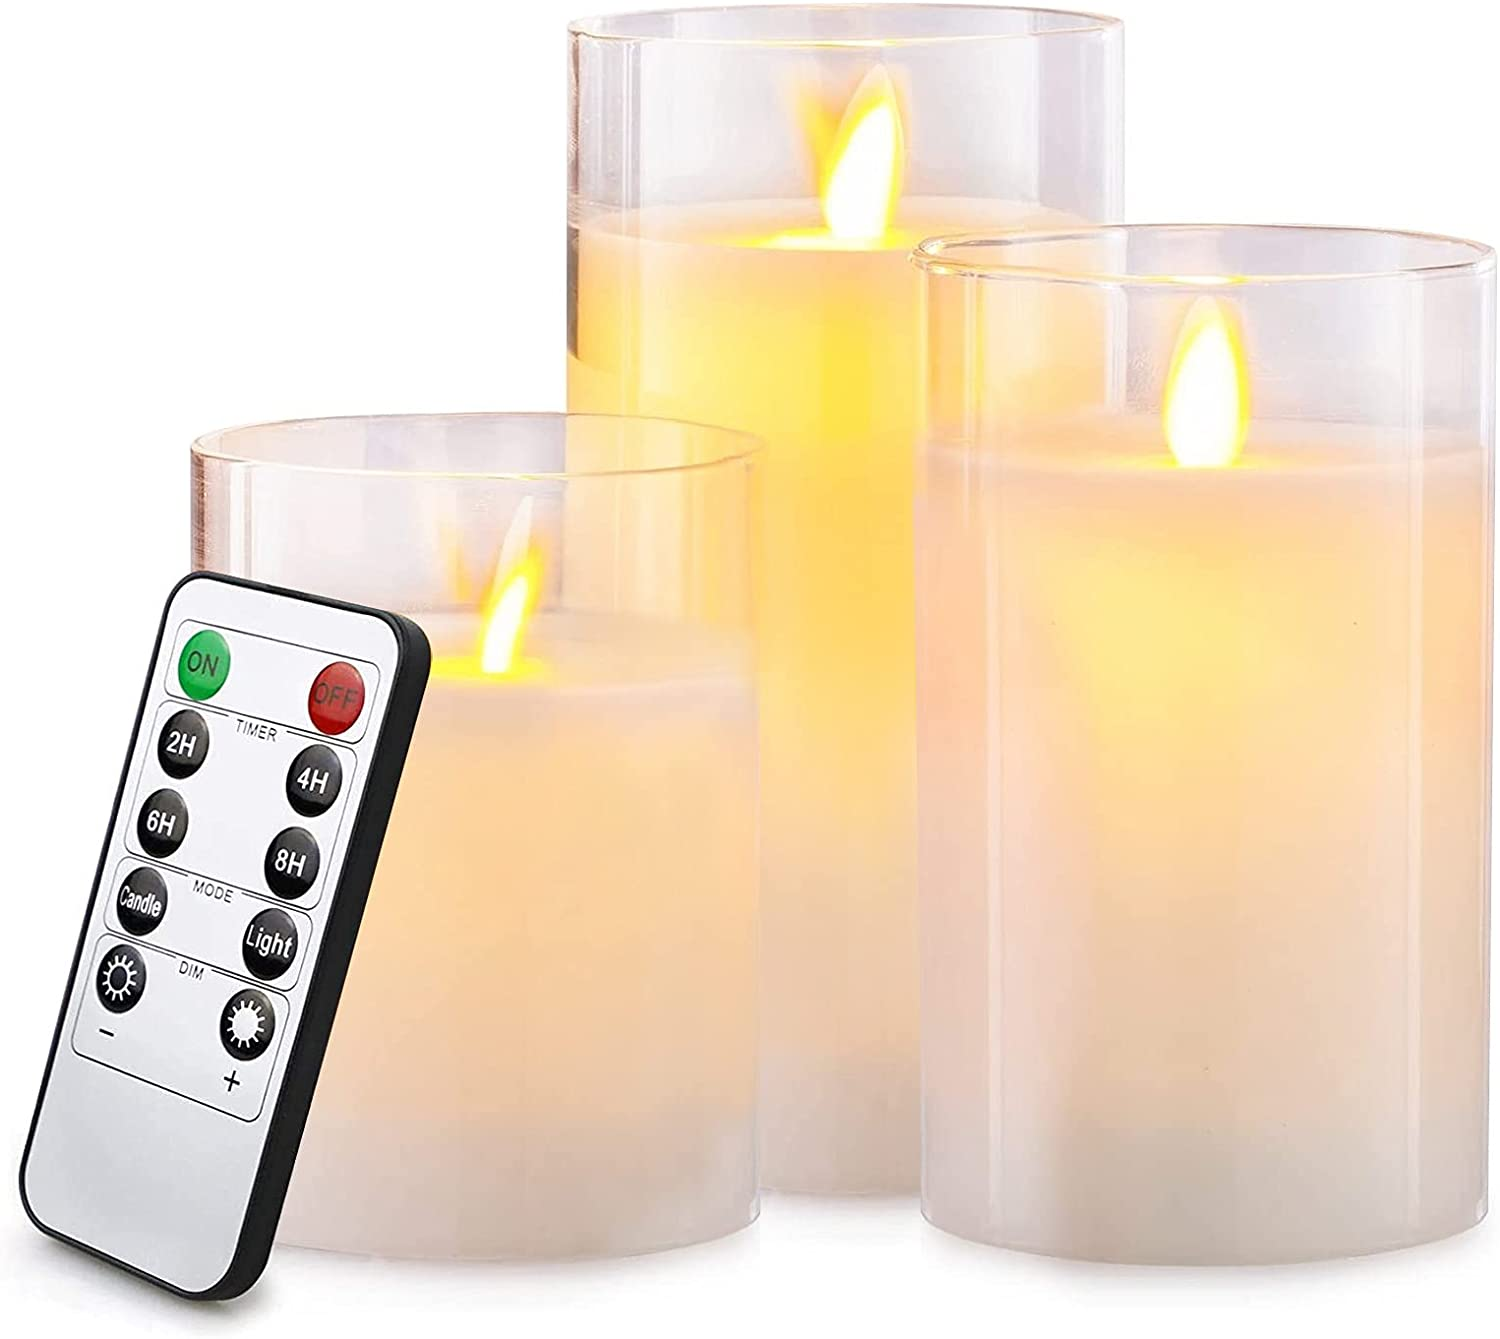 """Lezonic Glass LED Flameless Candles Battery Operated with Flickering Moving Wicks, Pack of 3 (D 3""""×H 4""""5""""6"""") White Real Wax Pillar Candles with Remote and Timer for Home Decor Fireplace Halloween"""